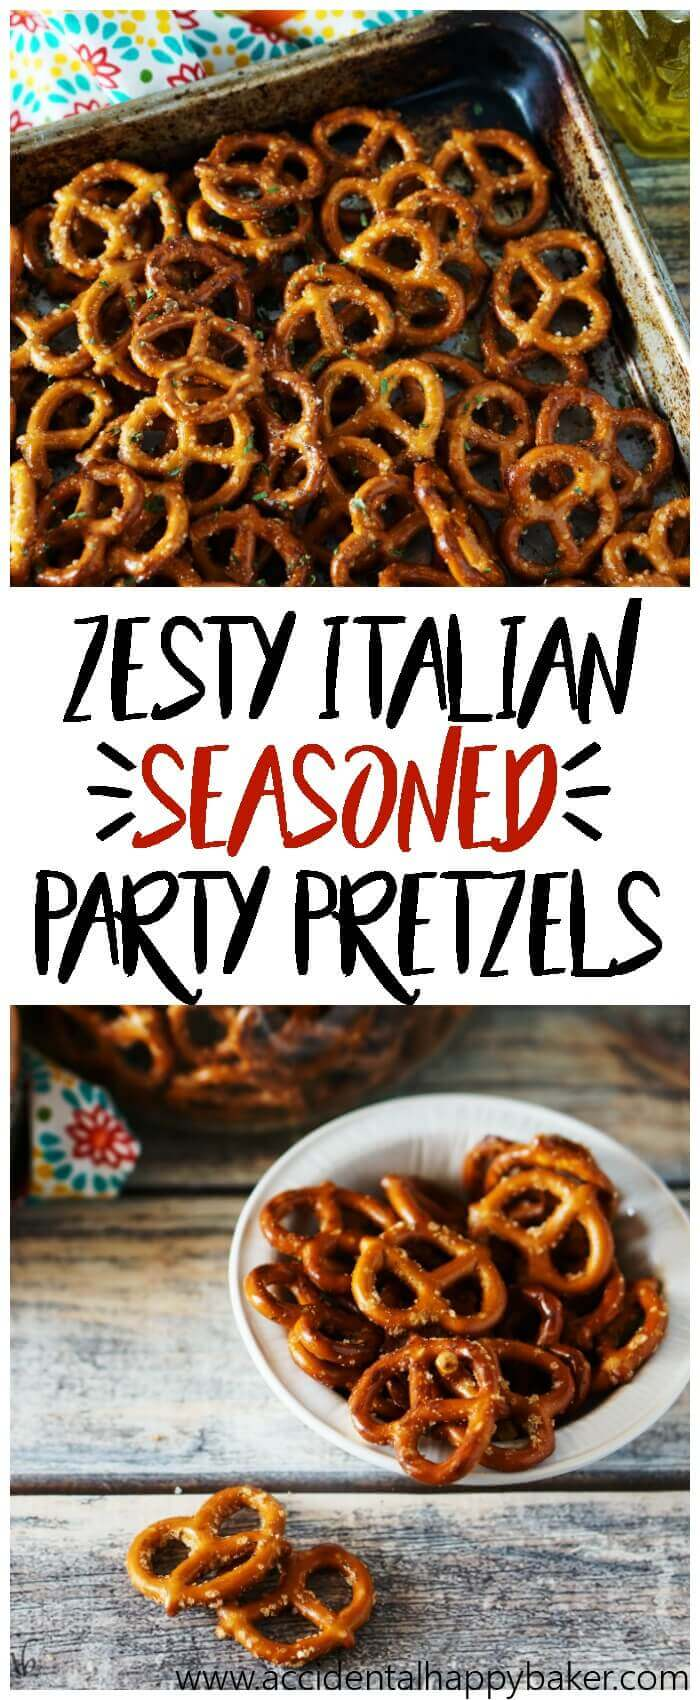 Zesty Italian Seasoned Pretzels are addictive! With a zippy garlic flavor and a bite of spiciness you'll keep going back for more. A perfect party snack.